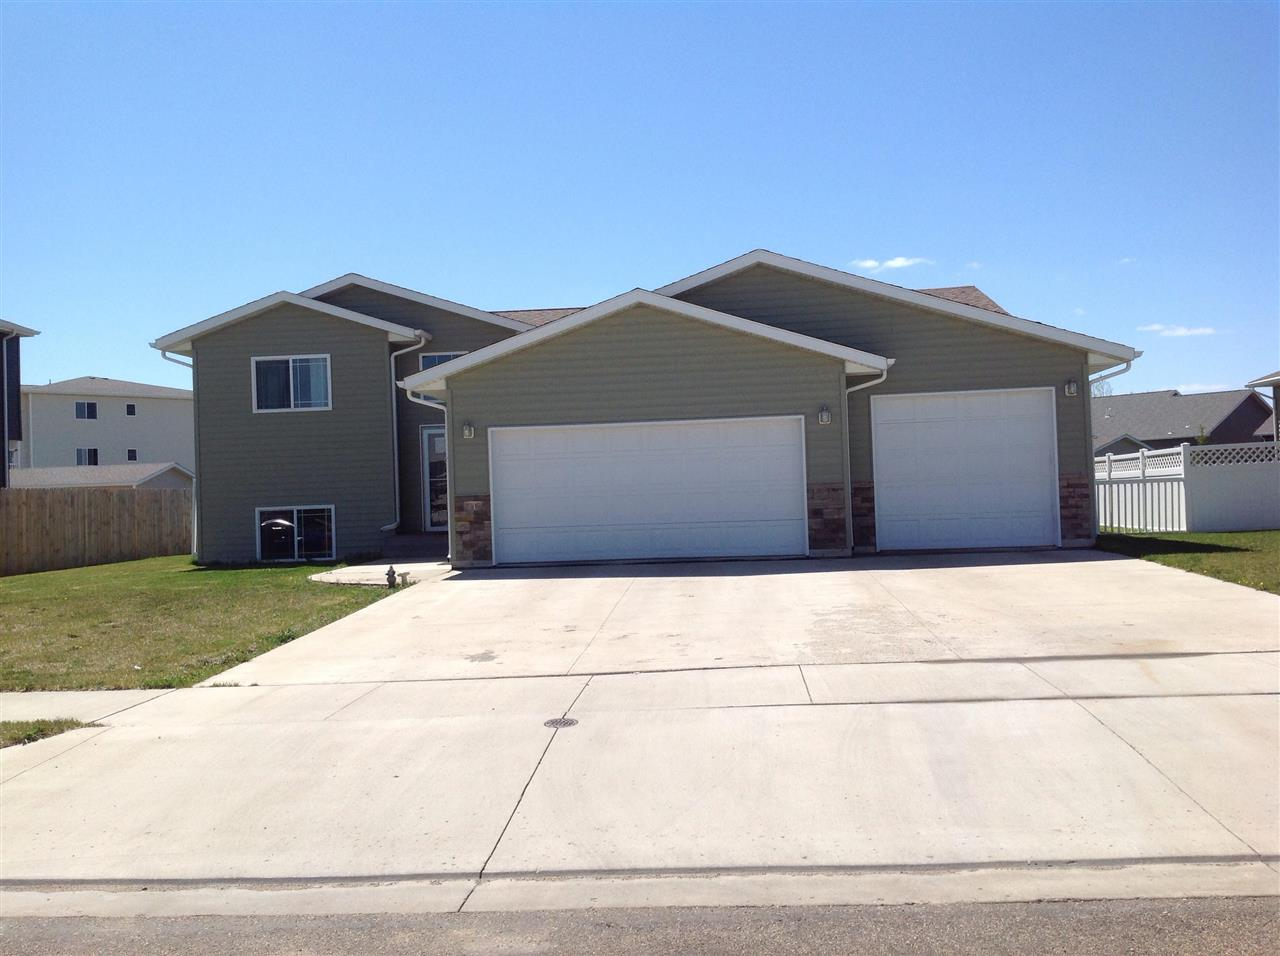 1812 26TH ST SW, Minot, ND 58701